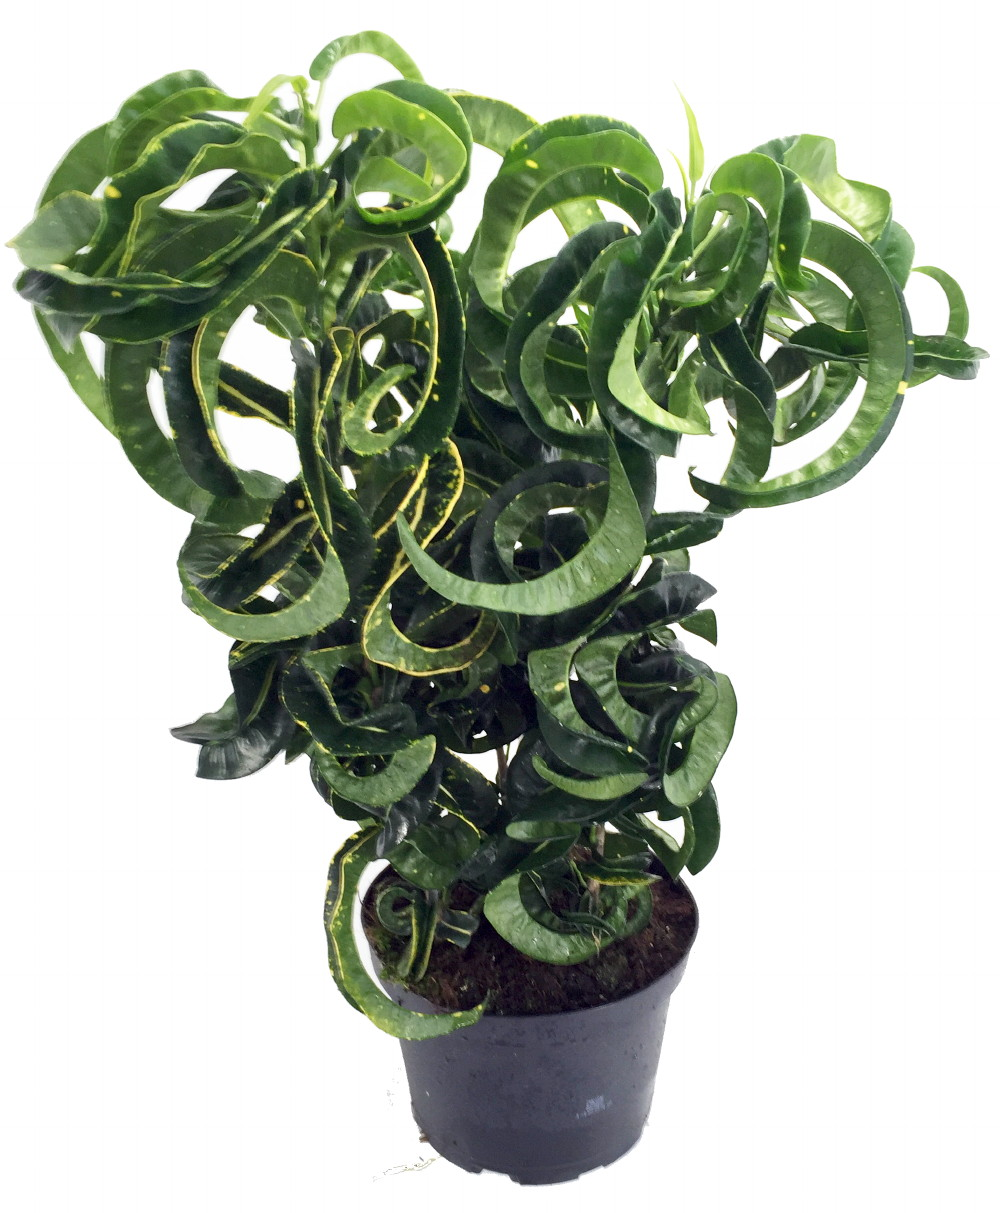 Revolution croton 6 pot colorful house plant easy to grow ebay - Colorful indoor plants ...